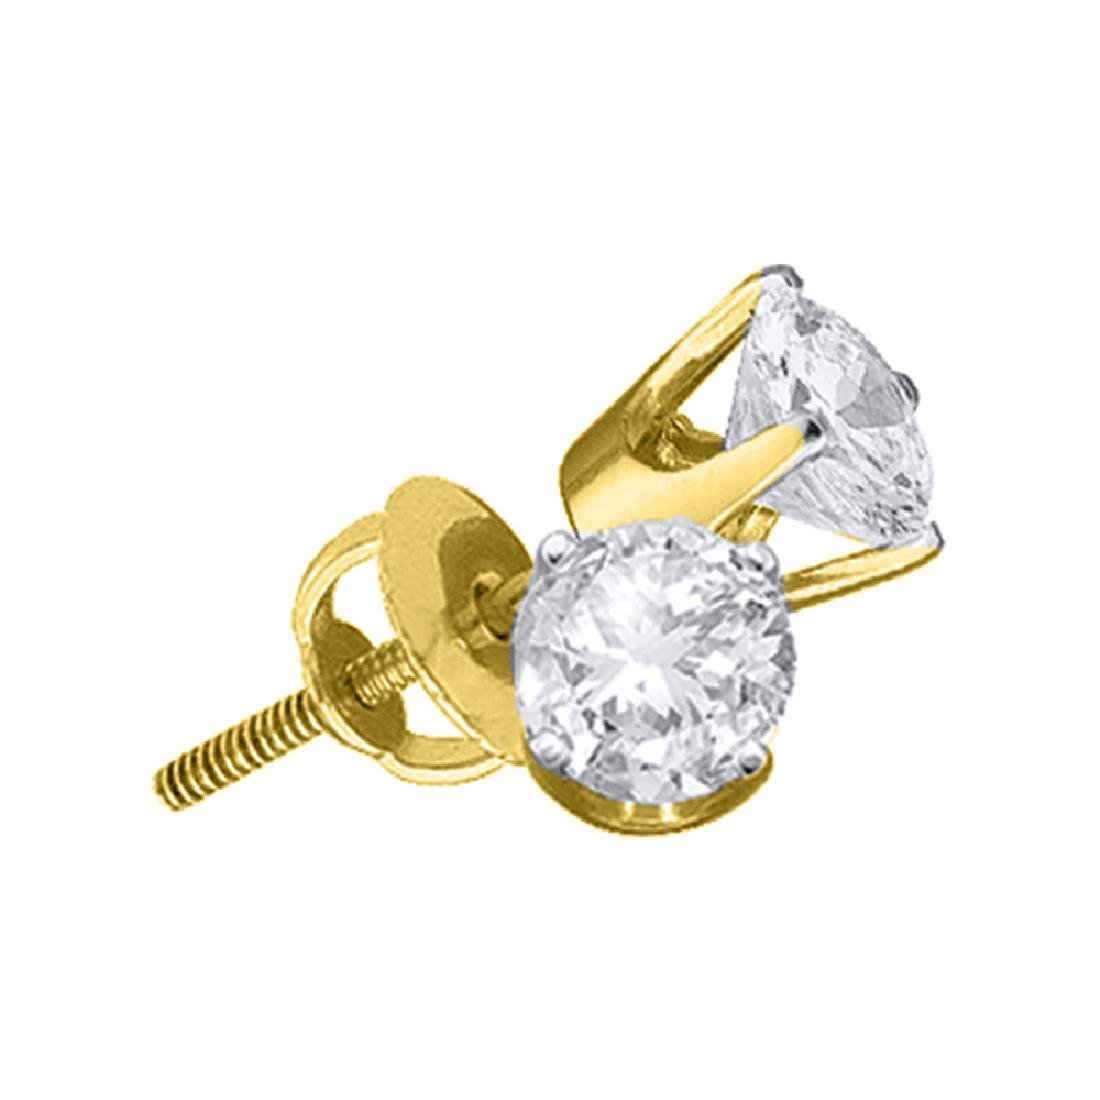 0.20 CTW Diamond Solitaire Stud Earrings 14KT Yellow